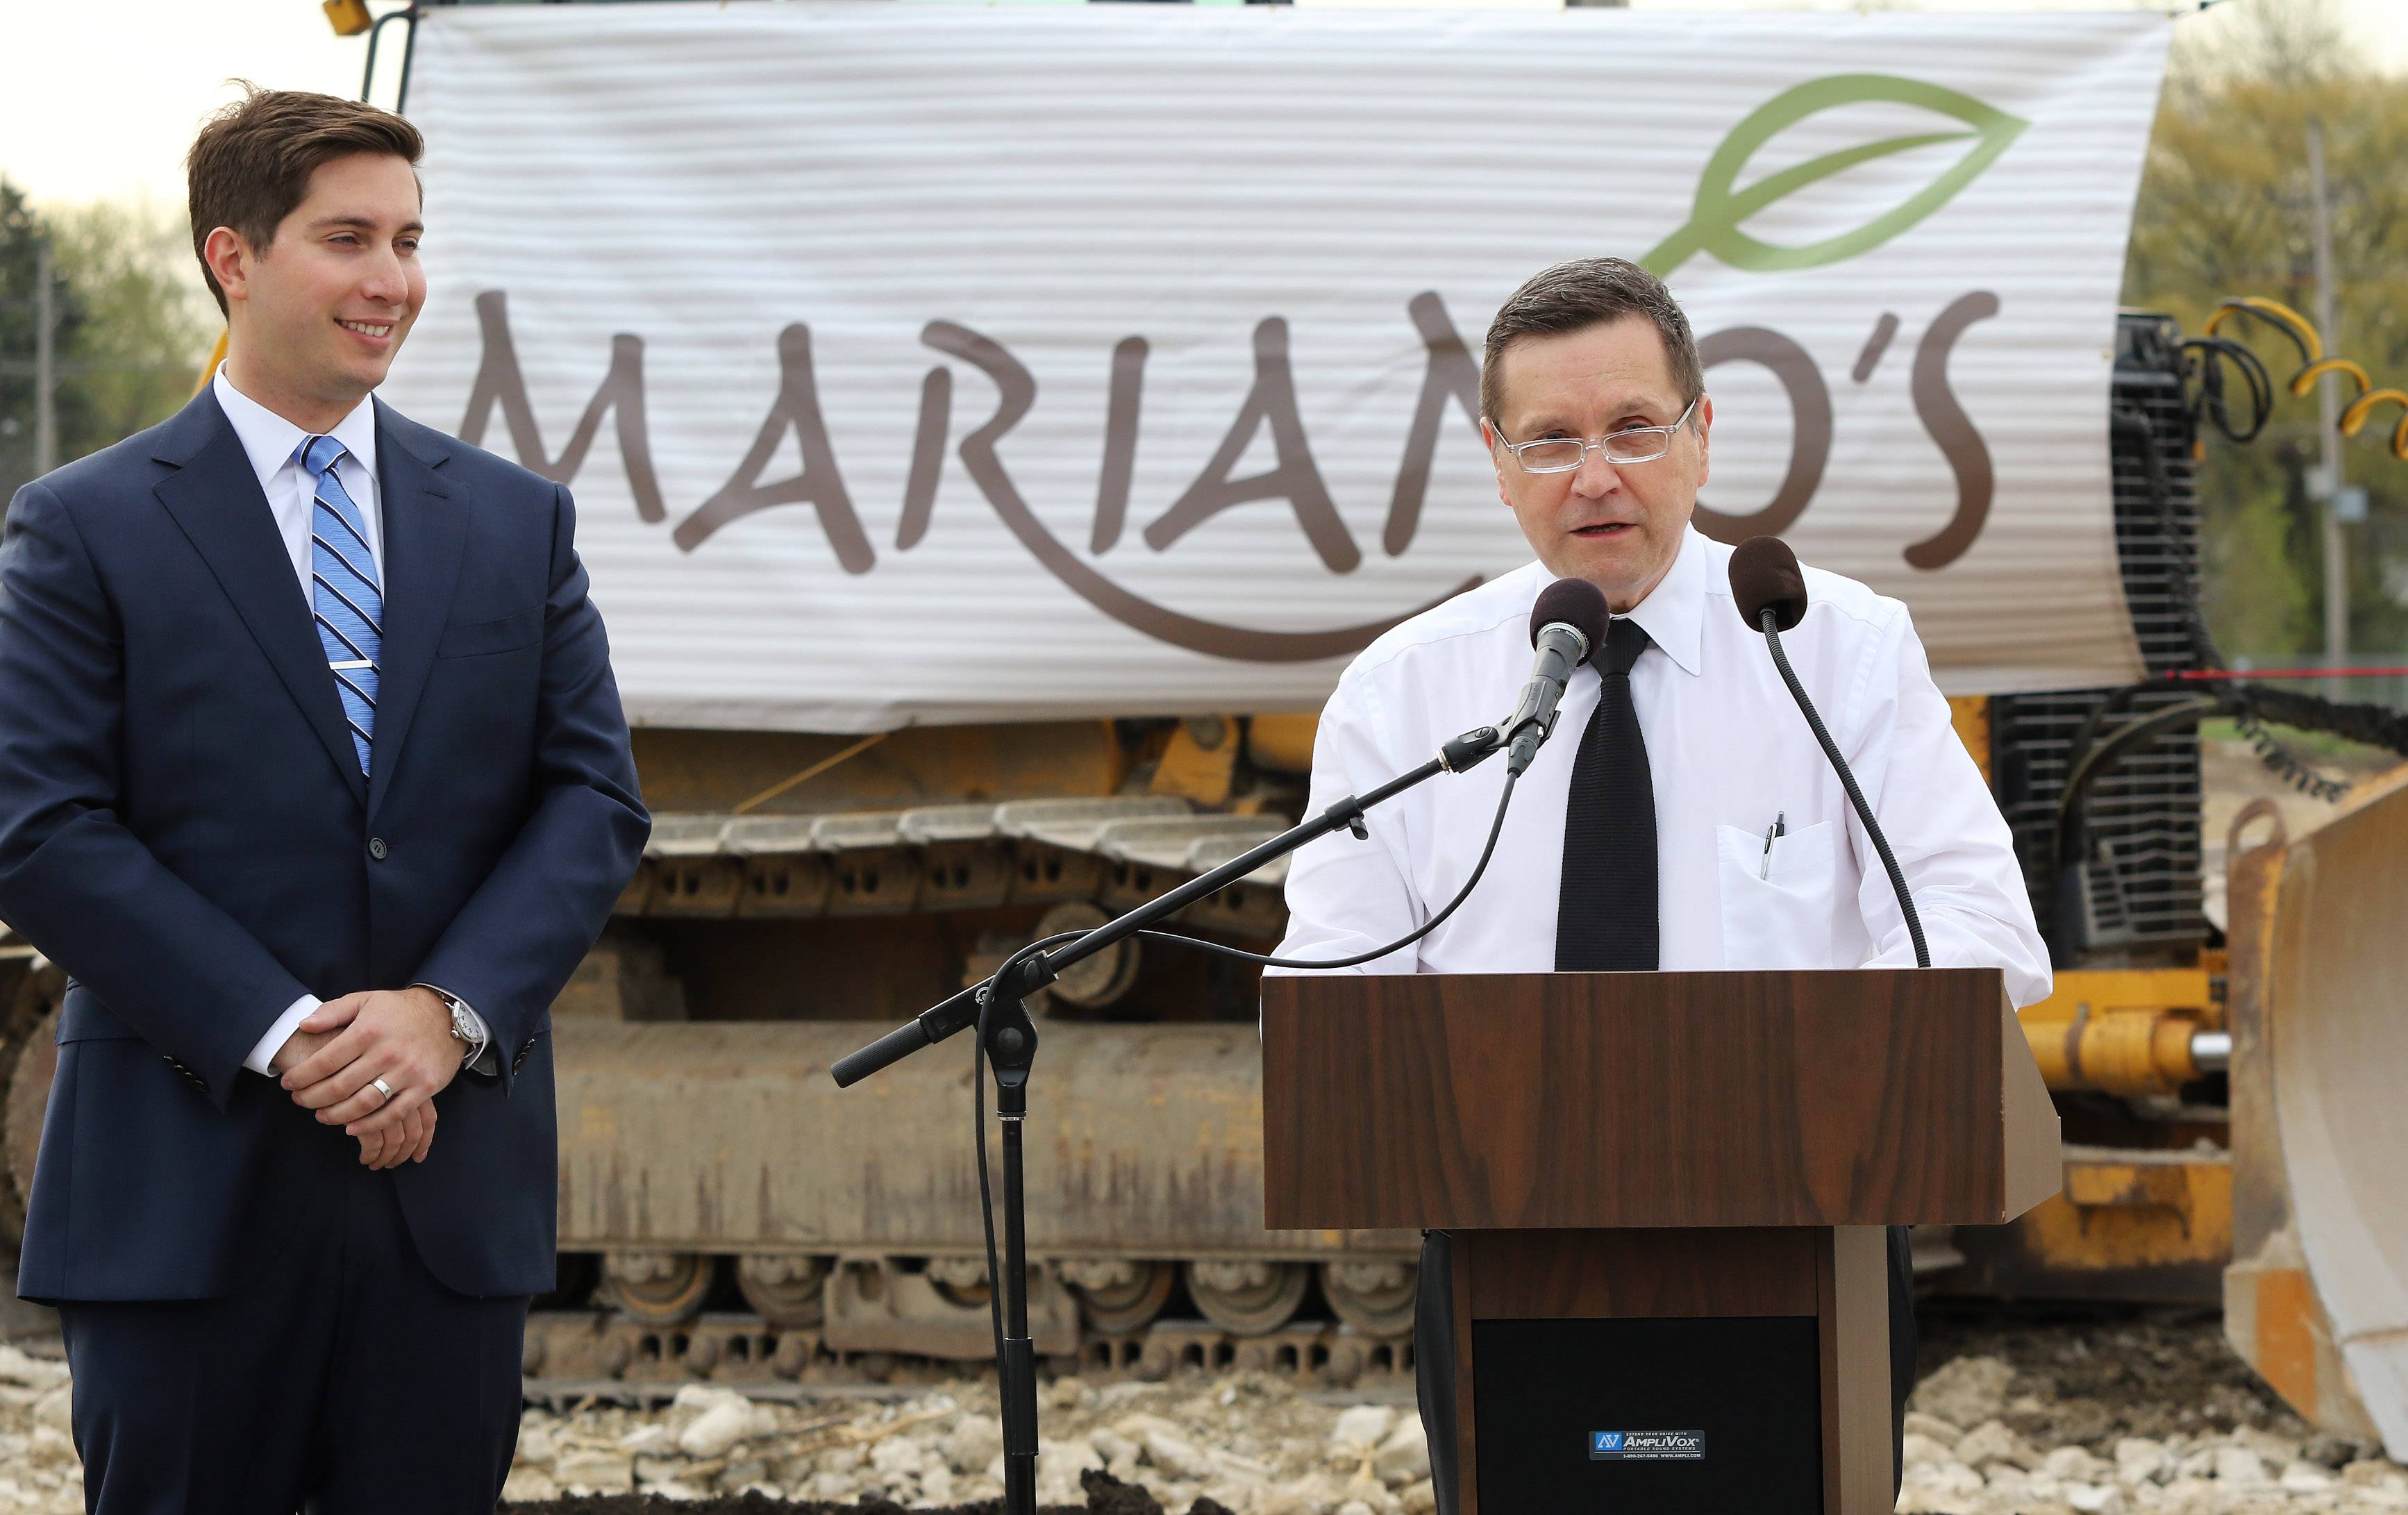 Bob Mariano returns to Des Plaines to break ground on store